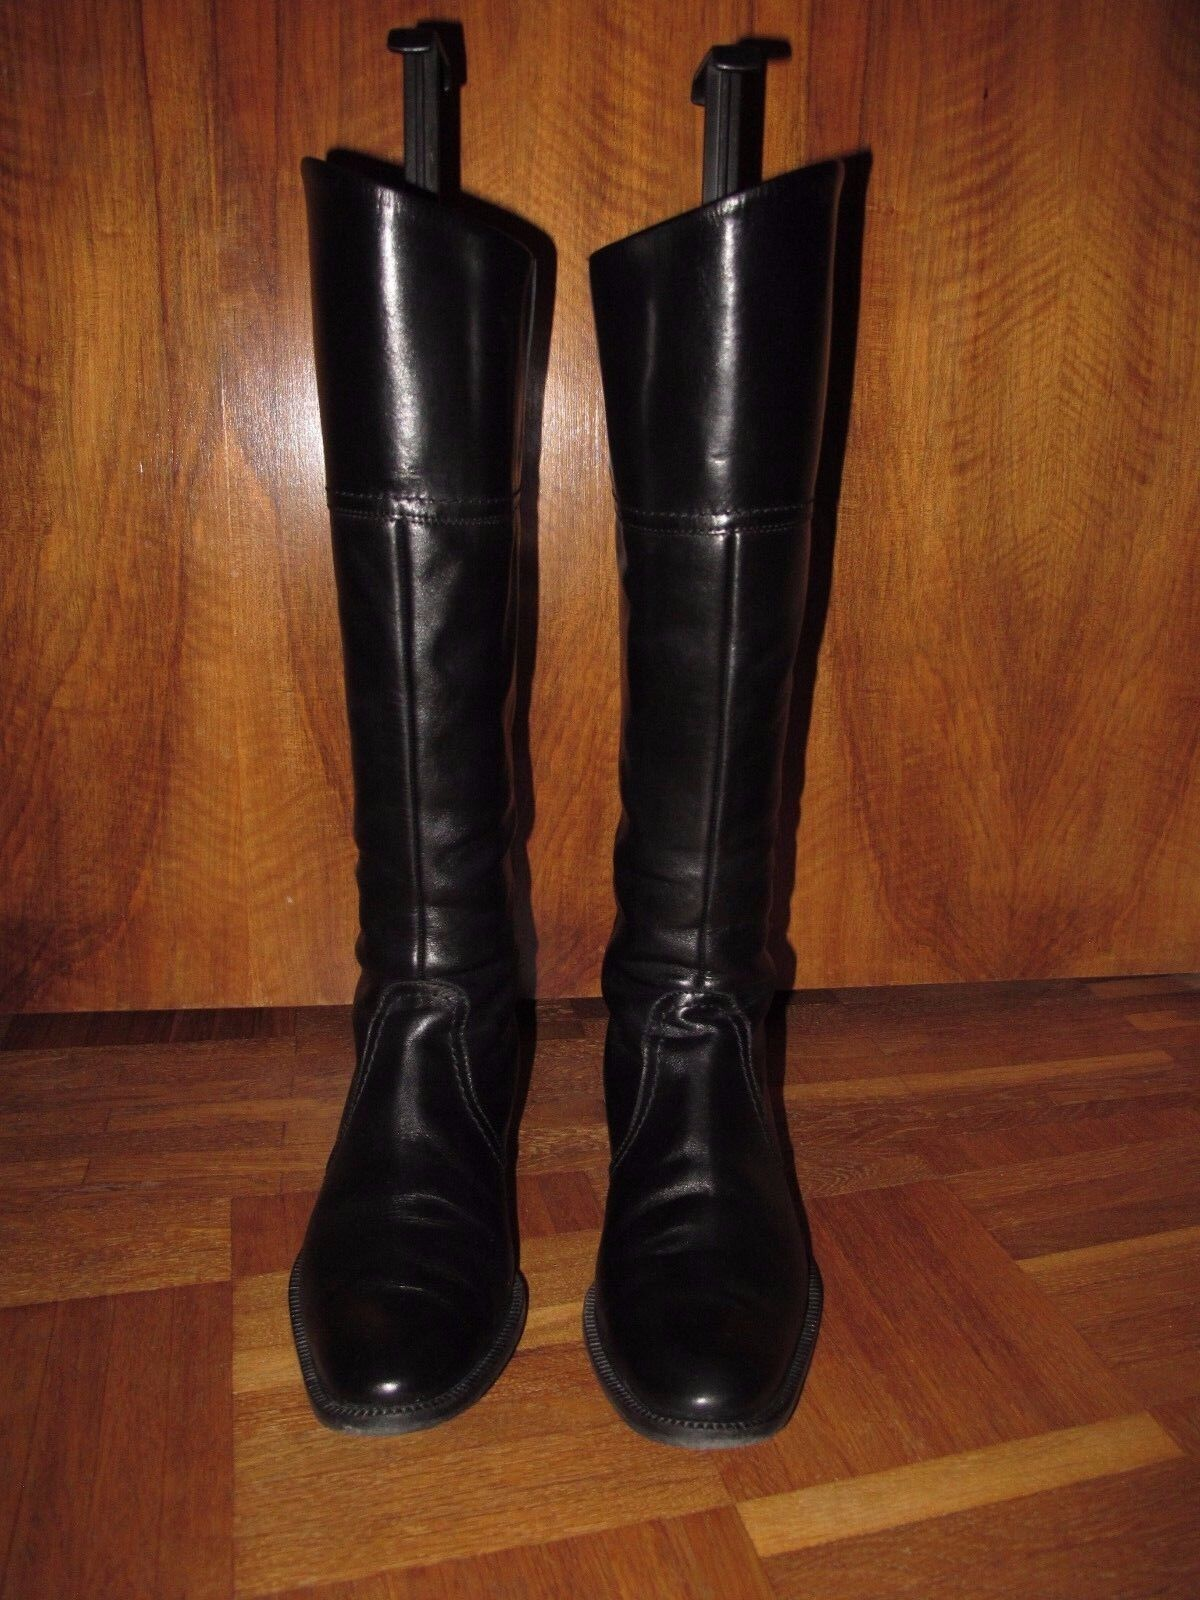 37,5 Gr. Stiefel KAISER PETER 4,5 97282eoao63738 Stiefel